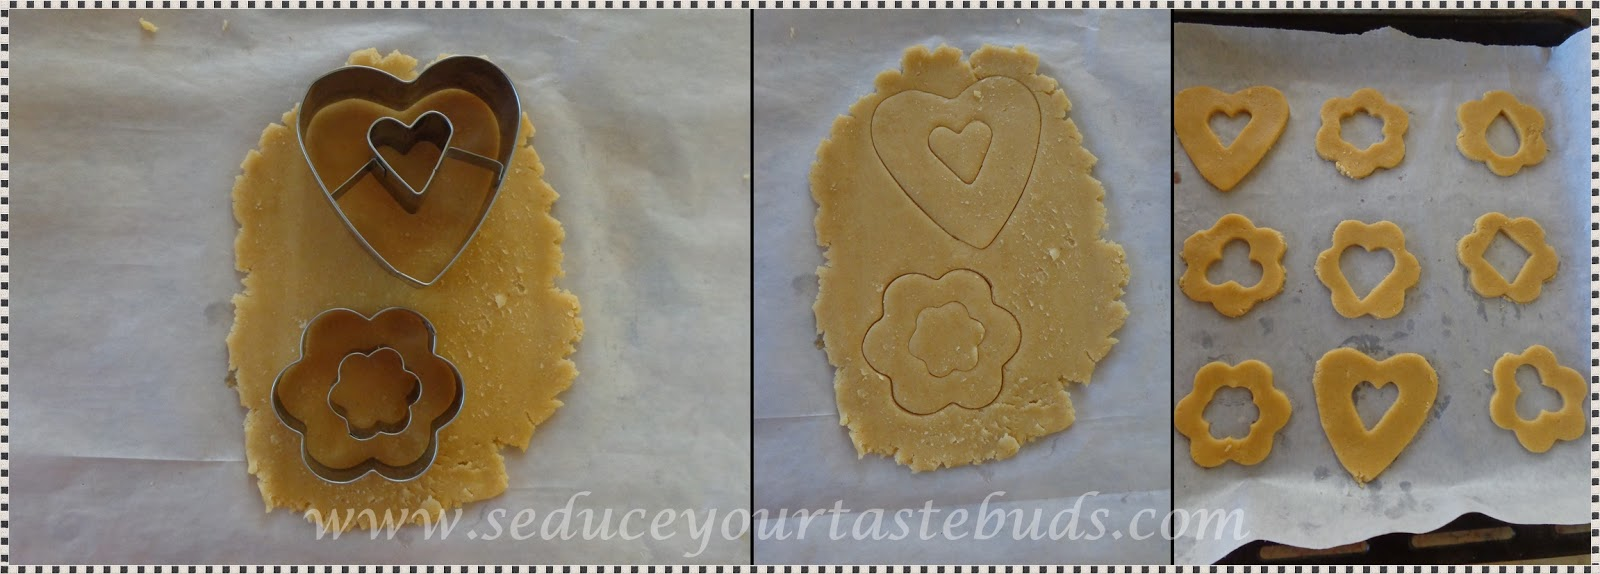 Eggless Stained Glass Cookies Easy Christmas Bakes Seduce Your